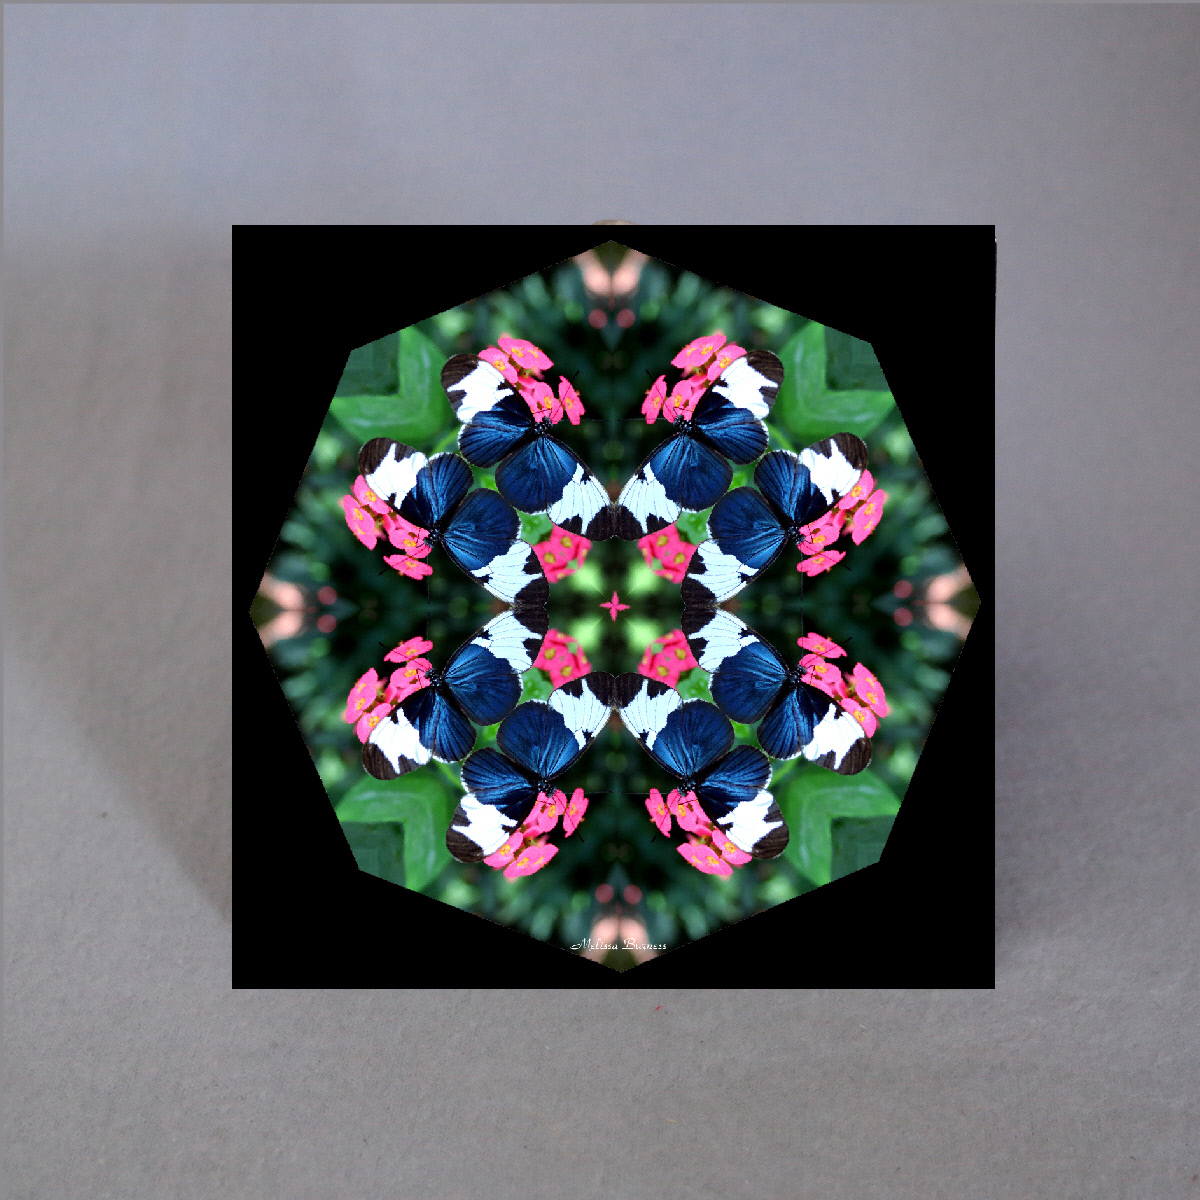 Butterfly Decorative Ceramic Tile Mandala Sacred Geometry Kaleidoscope Whimsical Persuasion